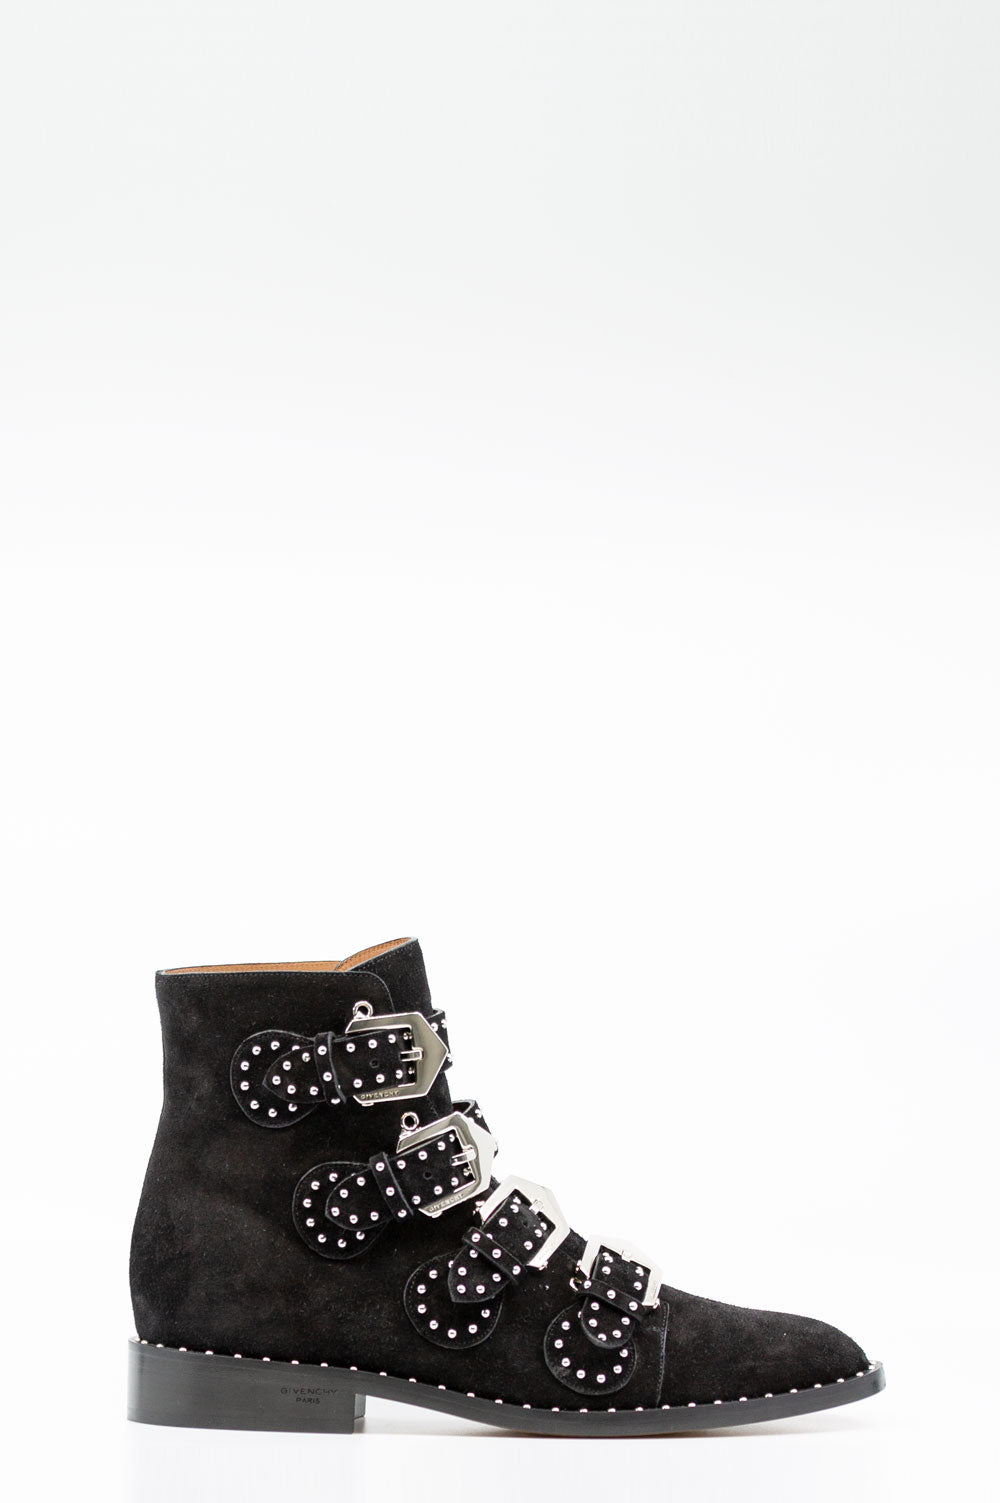 GIVENCHY Elegant Boots